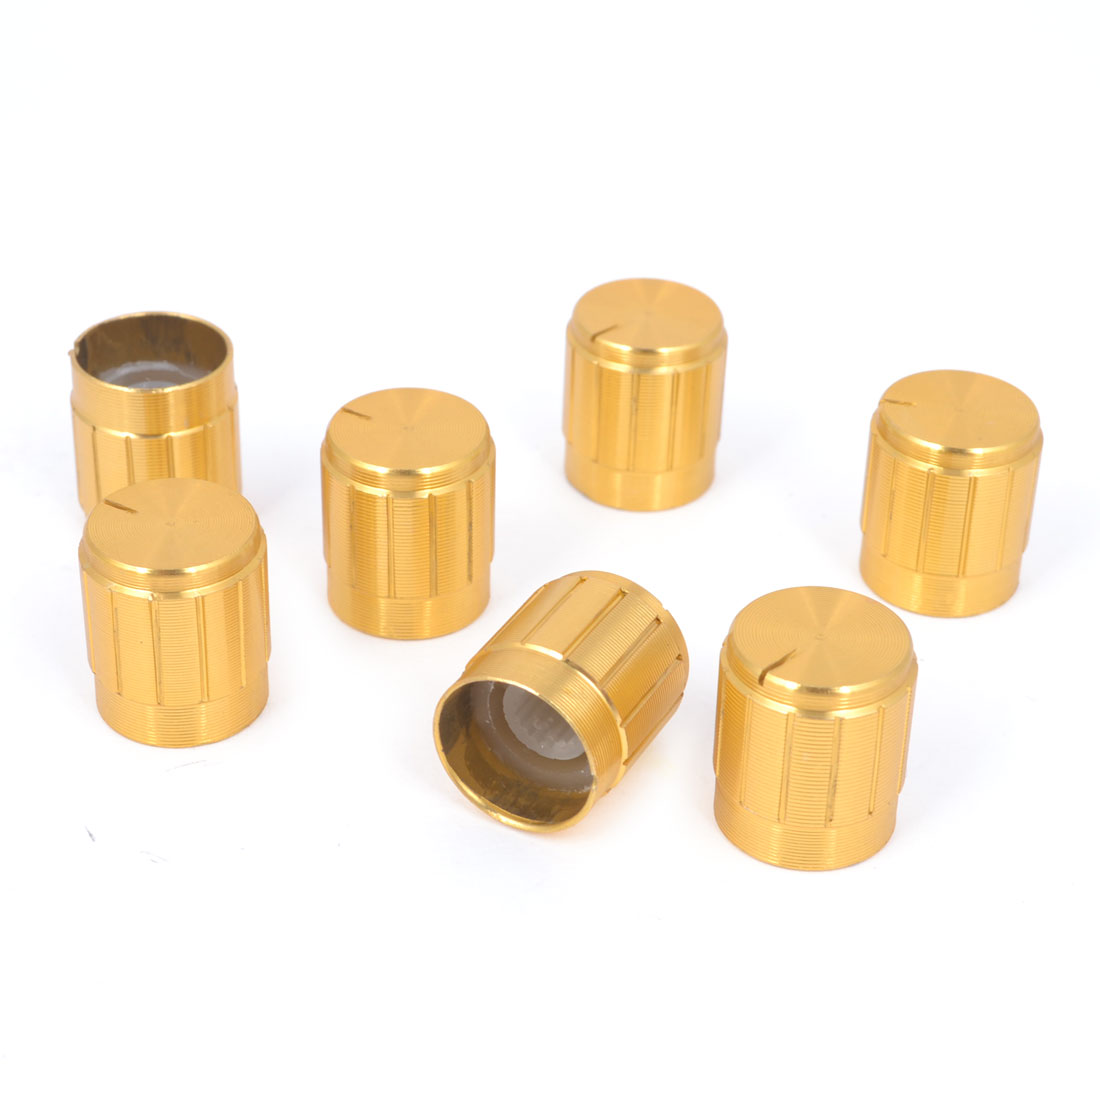 15mm x 17mm Gold Tone Aluminum Potentiometer Knobs 7Pcs